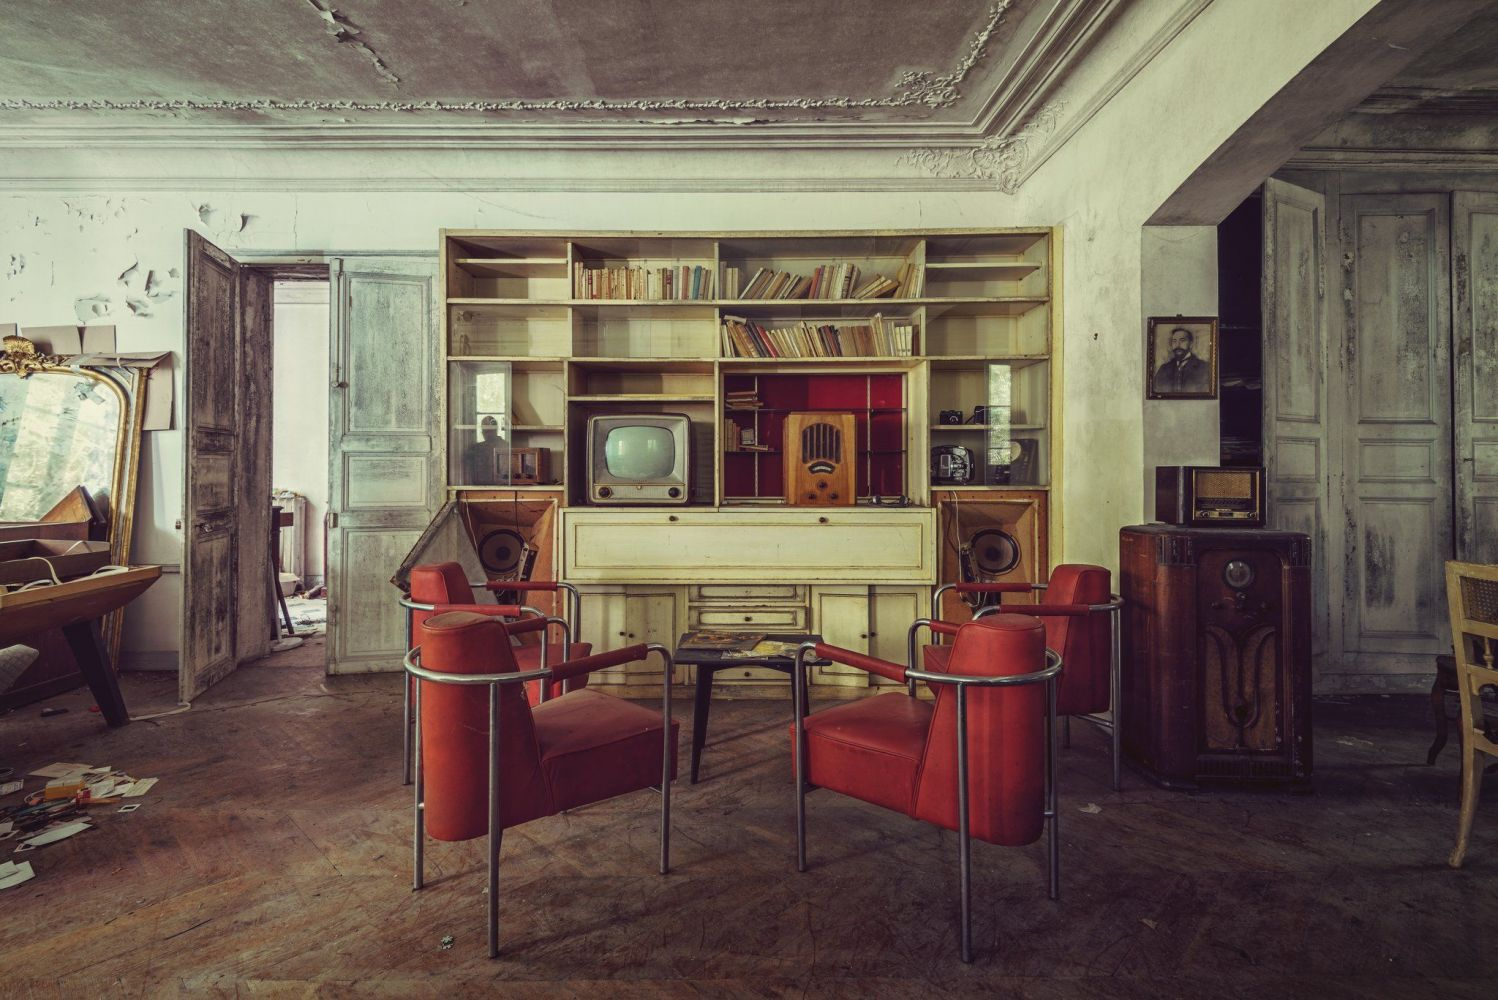 Photography - Gina Soden - Radios in Lounge